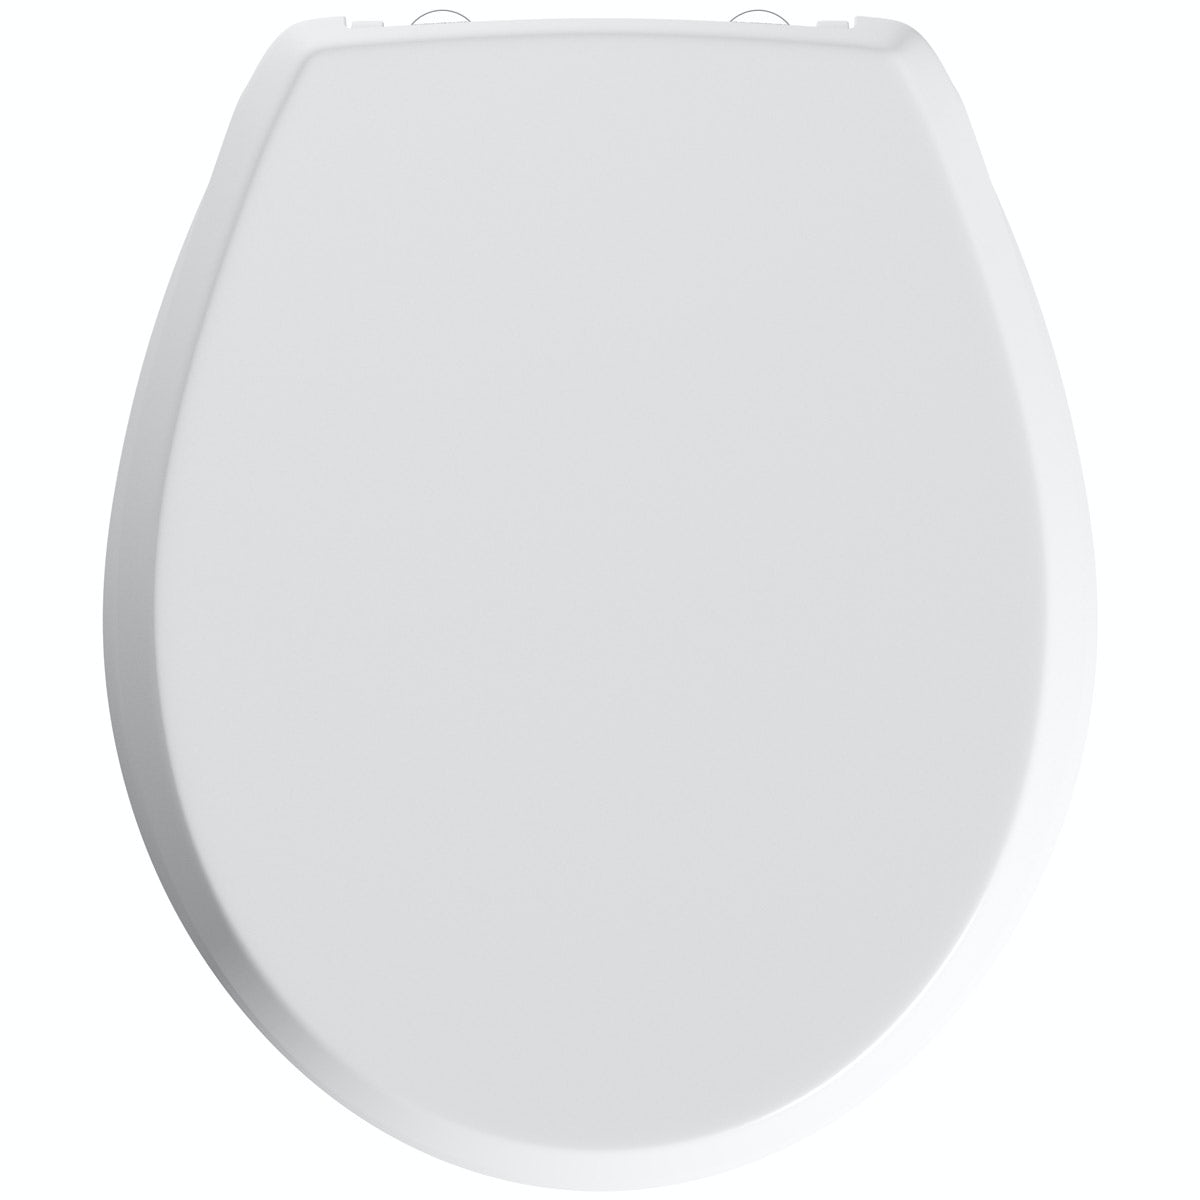 Clarity universal thermoset toilet seat